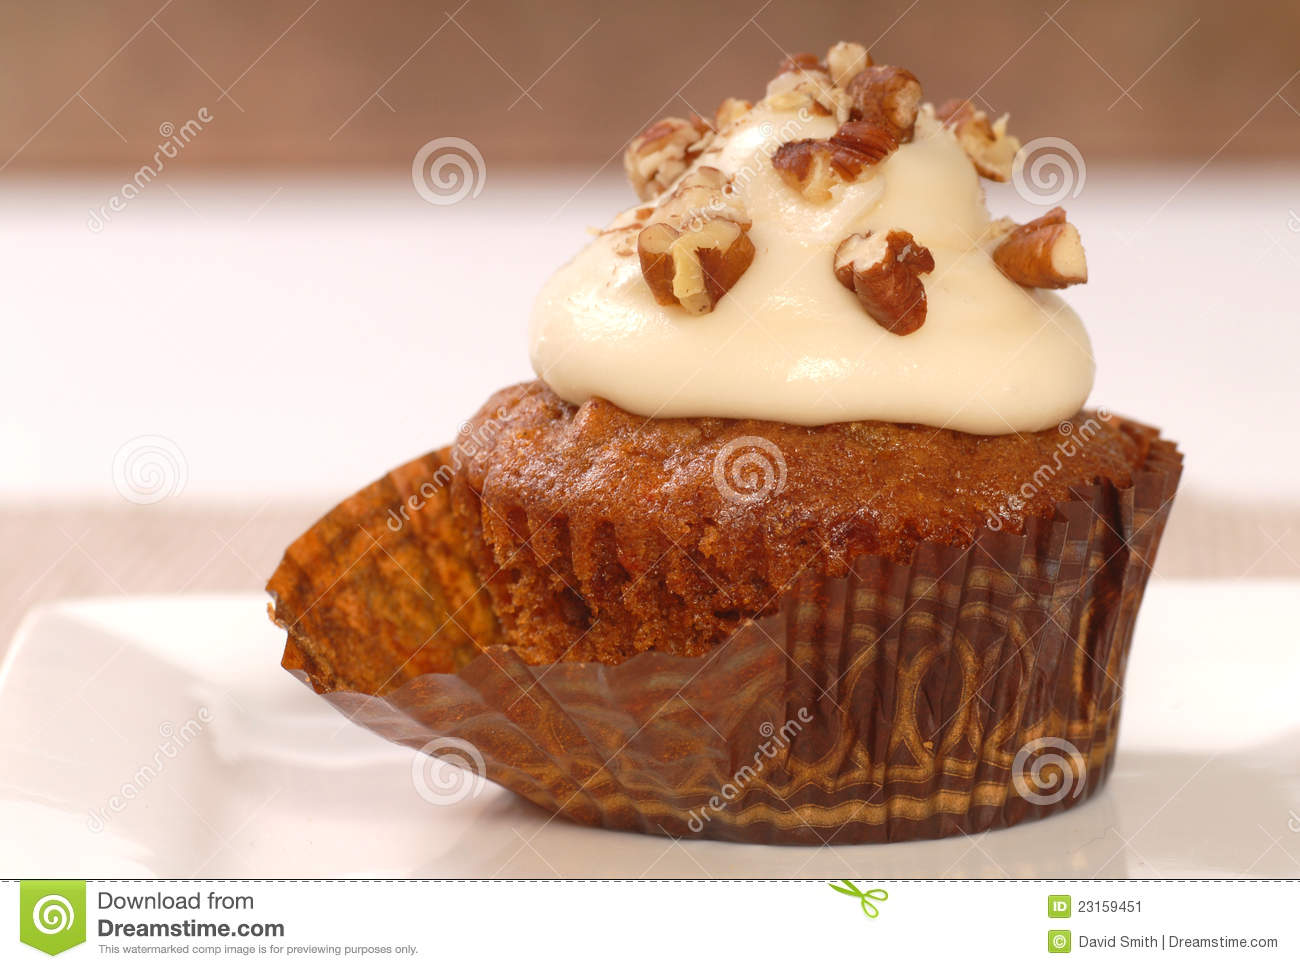 Carrot Cake Cupcake With Cream Cheese Frosting Stock Image - Image ...